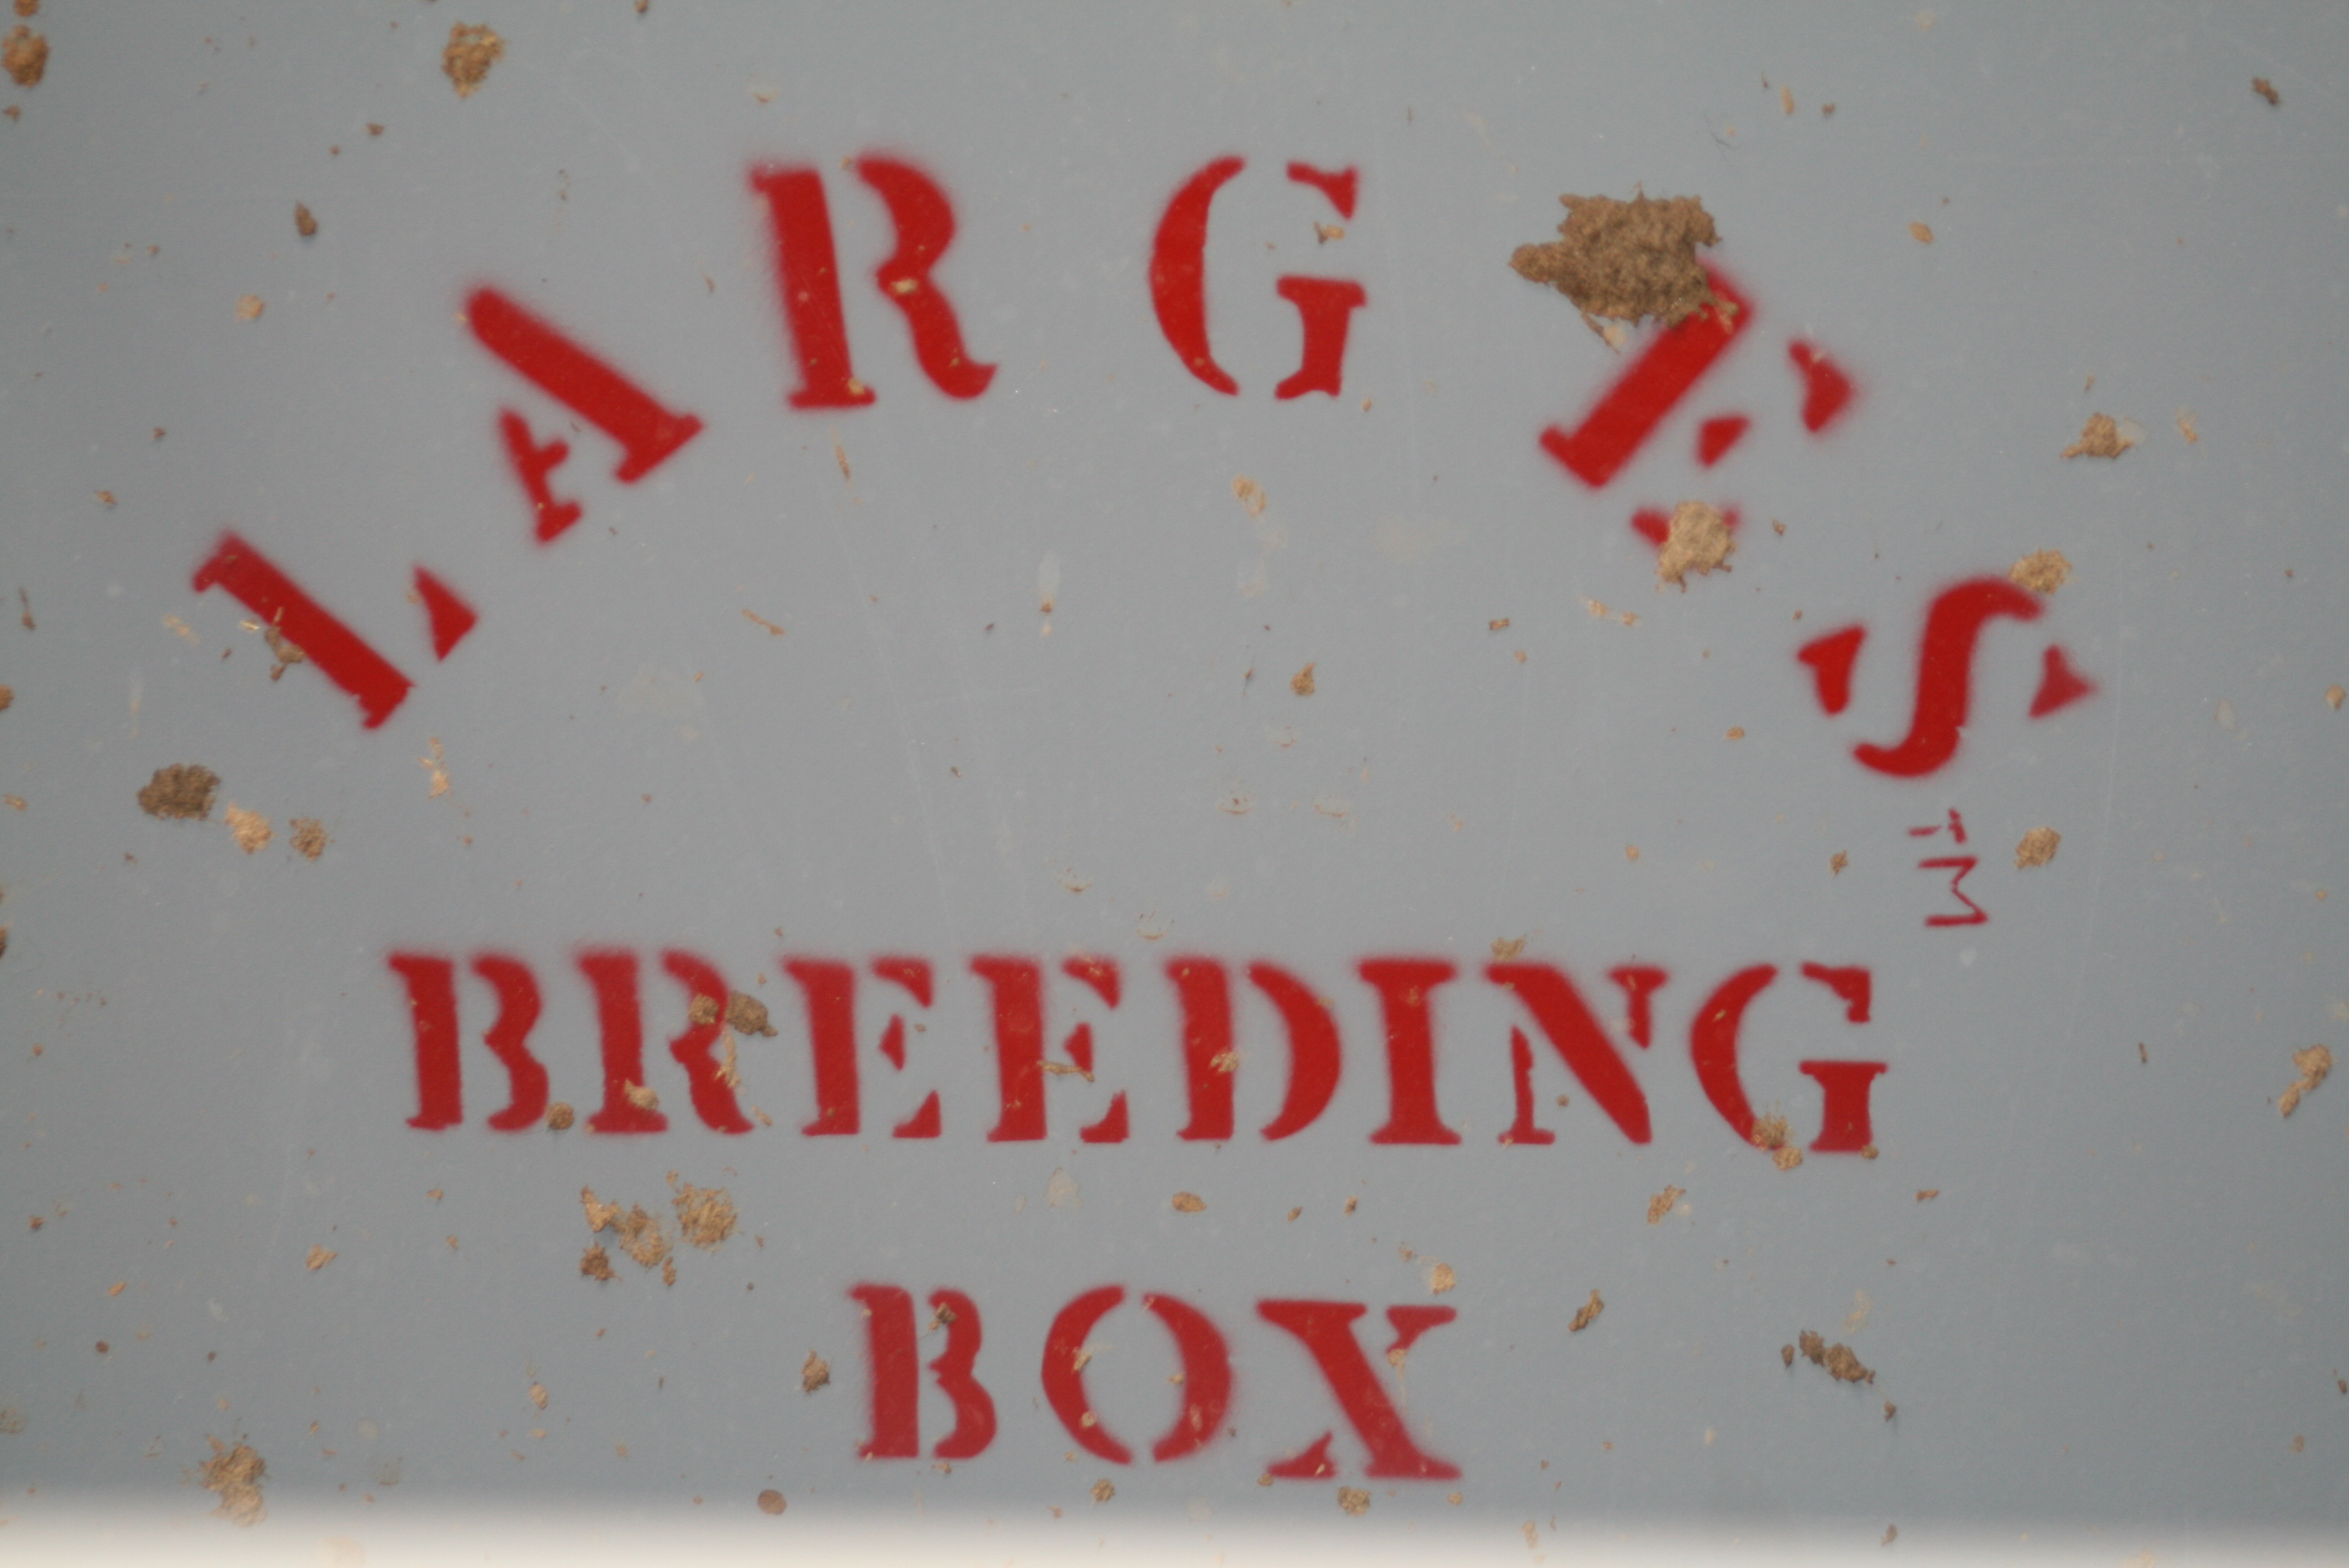 Breeding Box For Cattle The Cattle Come Into The Box